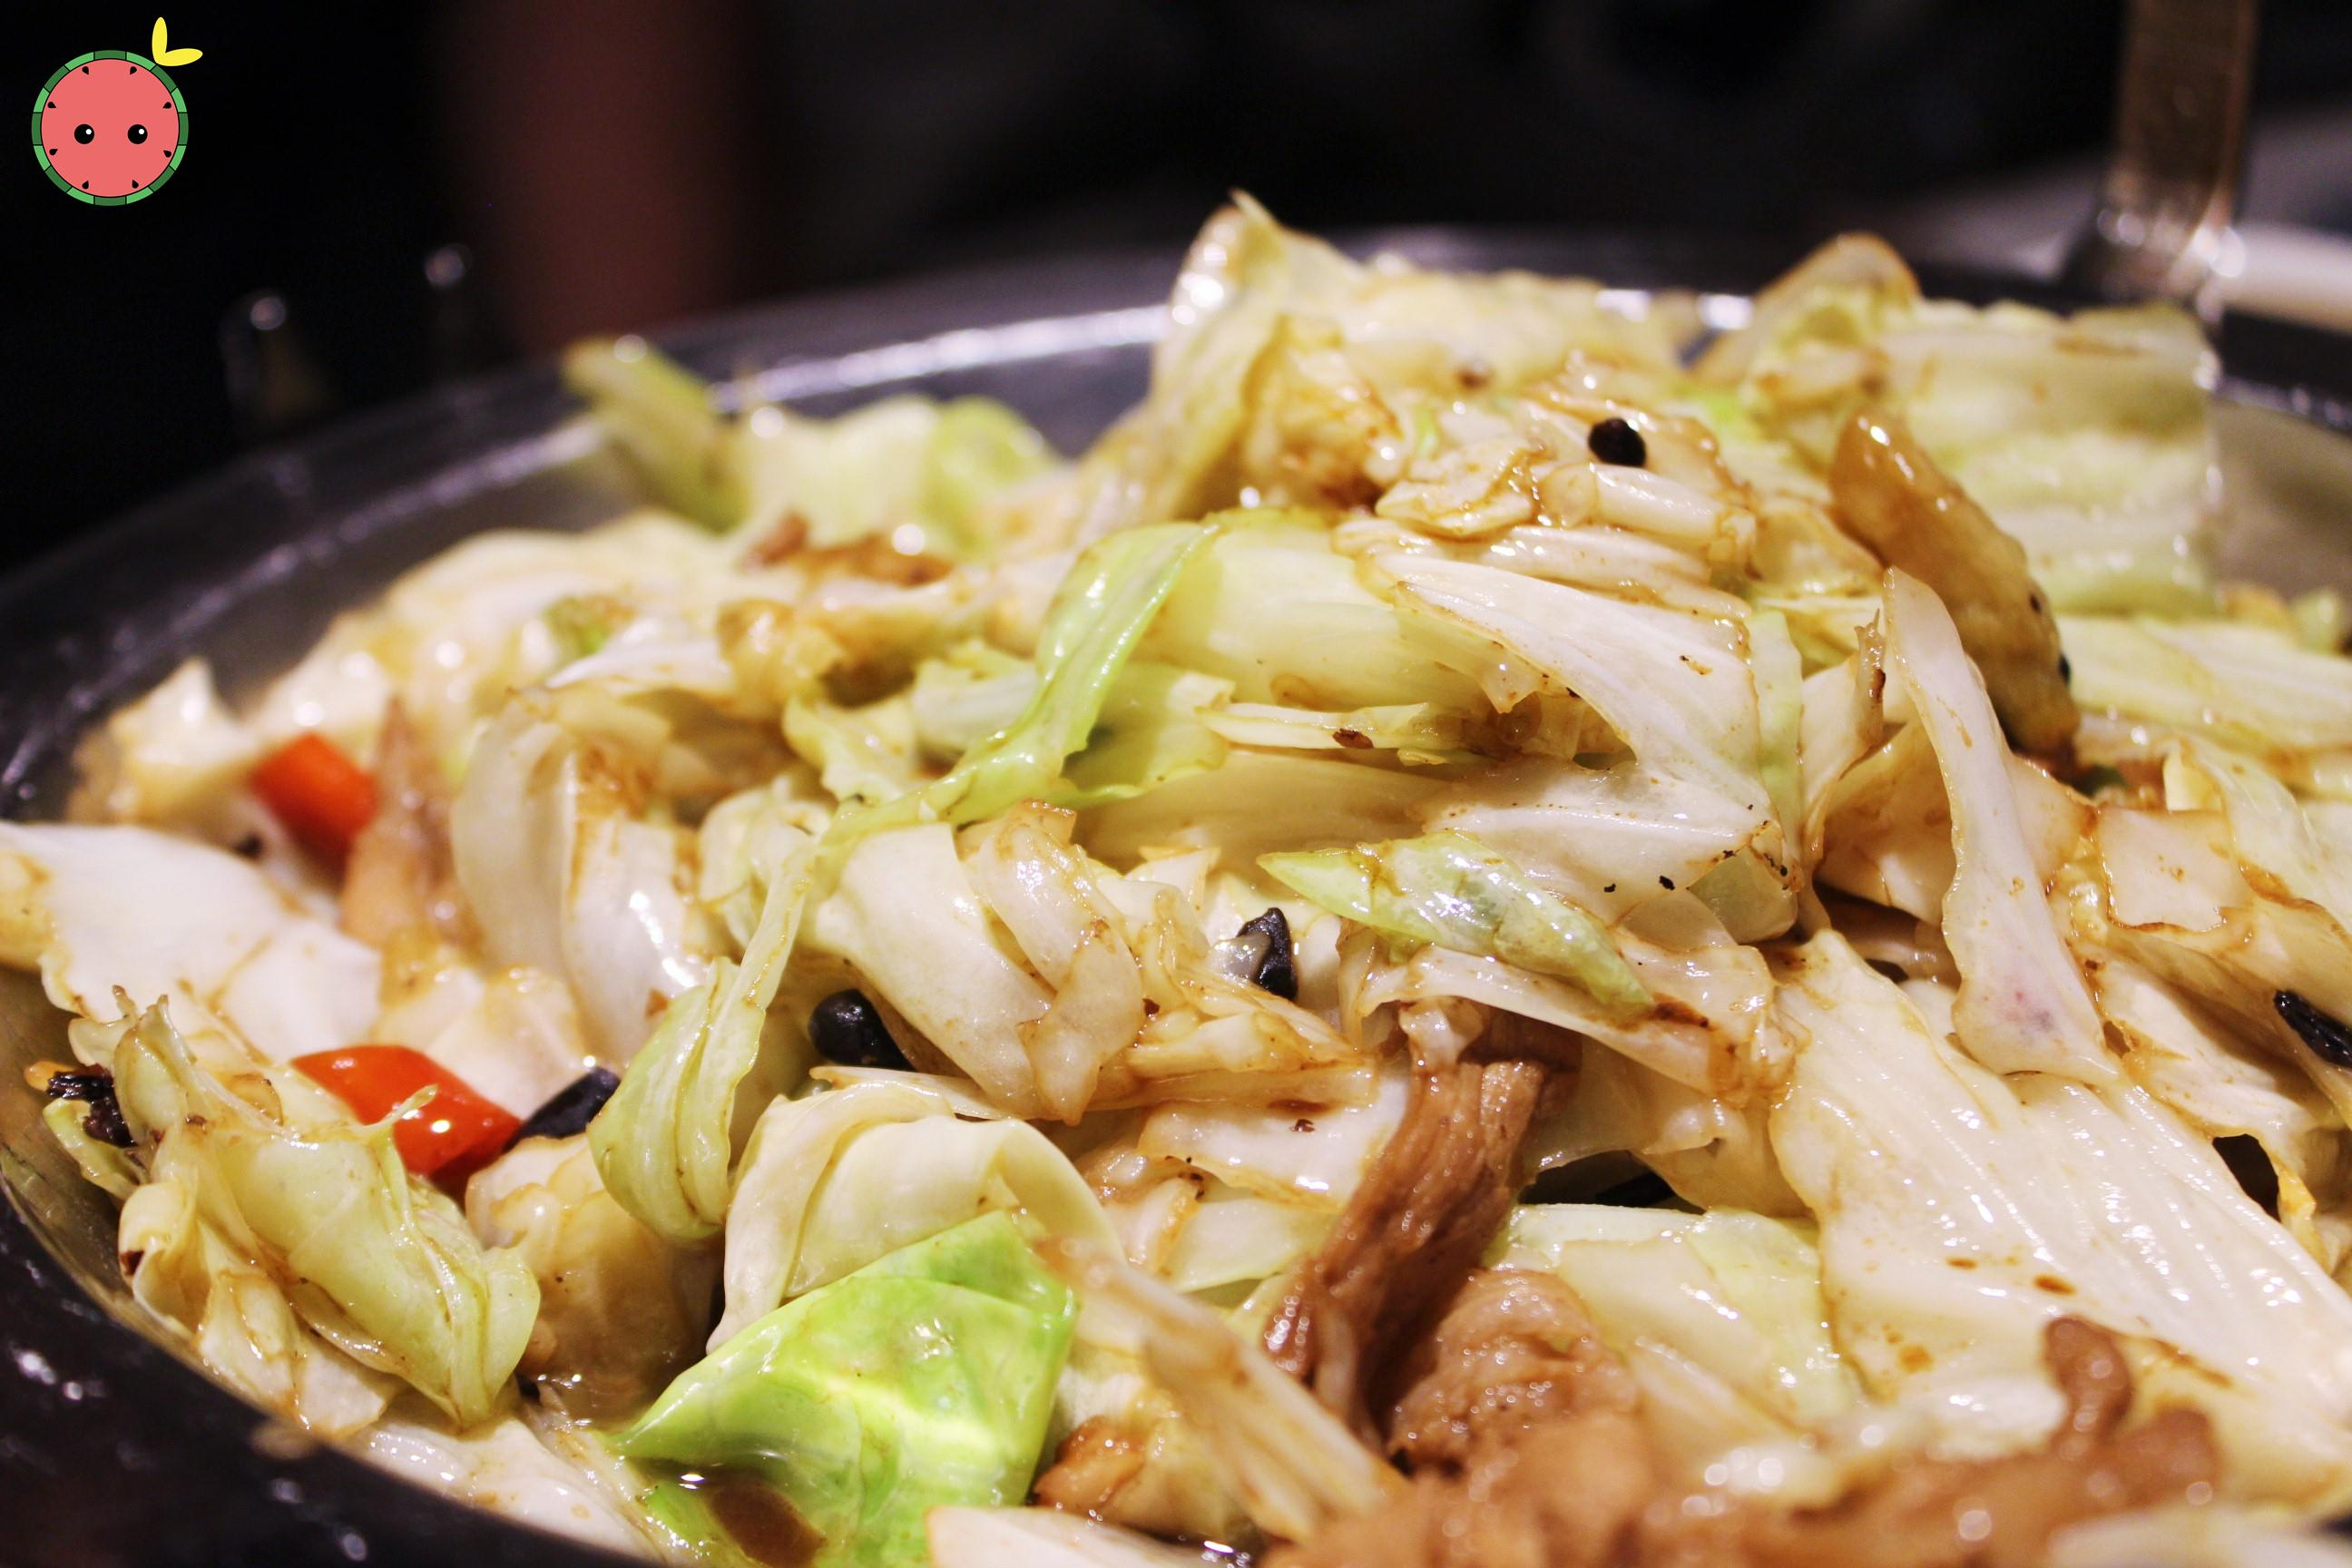 Fried Cabbage with Soy Sauce